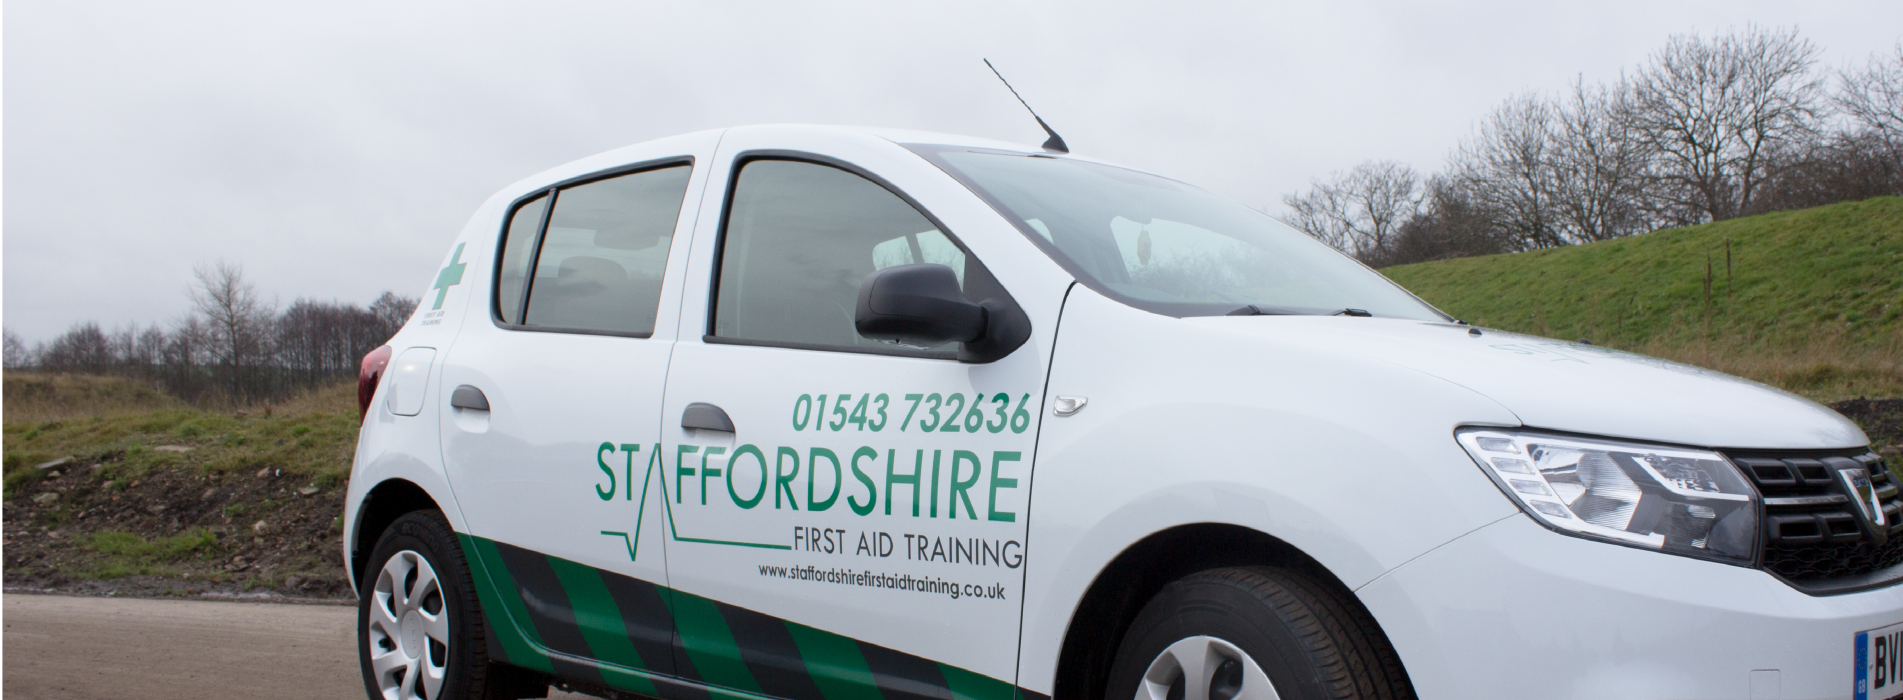 ross-on-wye first aid training